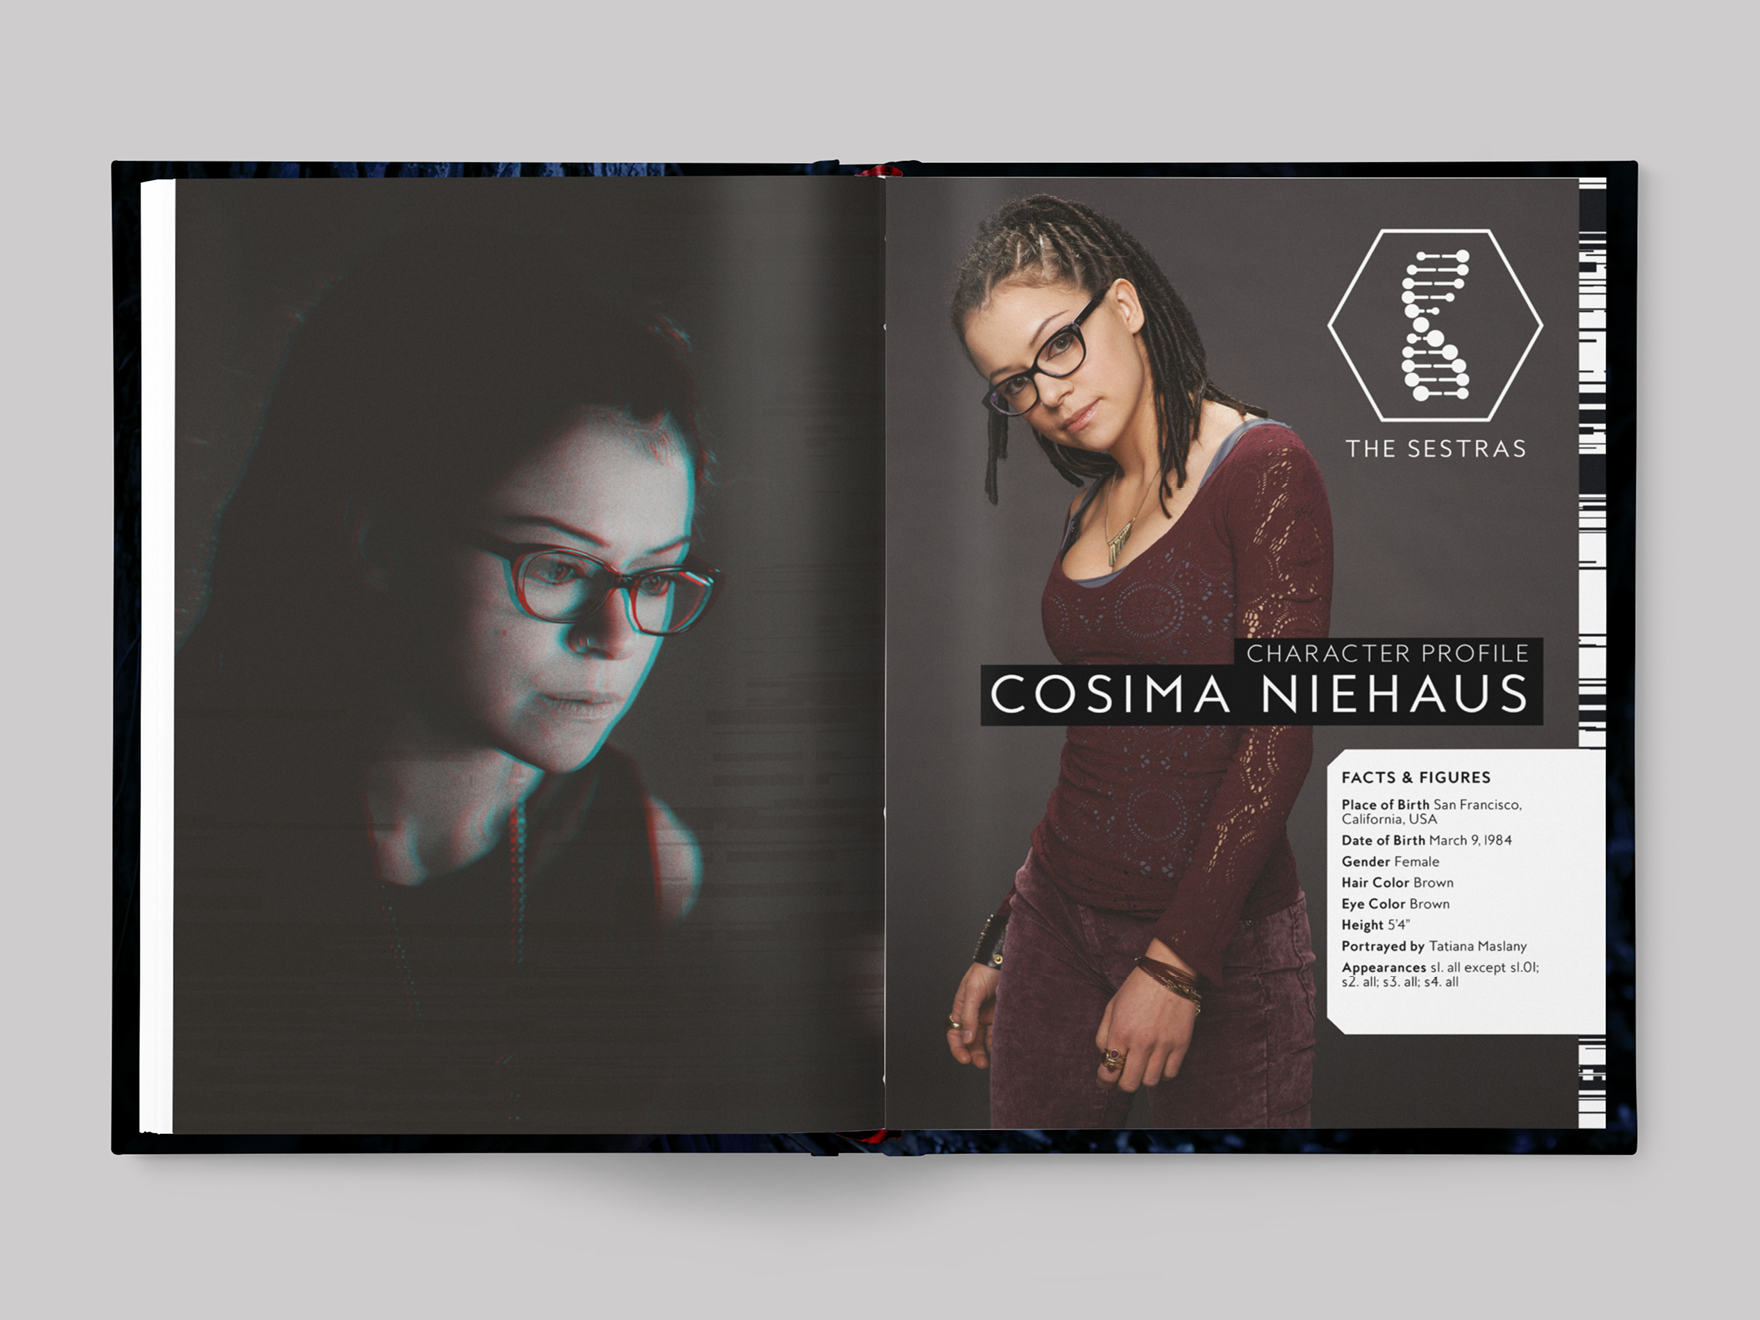 Inside pages from The DNA of Orphan Black book showing the chapter opener to the profile of Cosima Niehaus